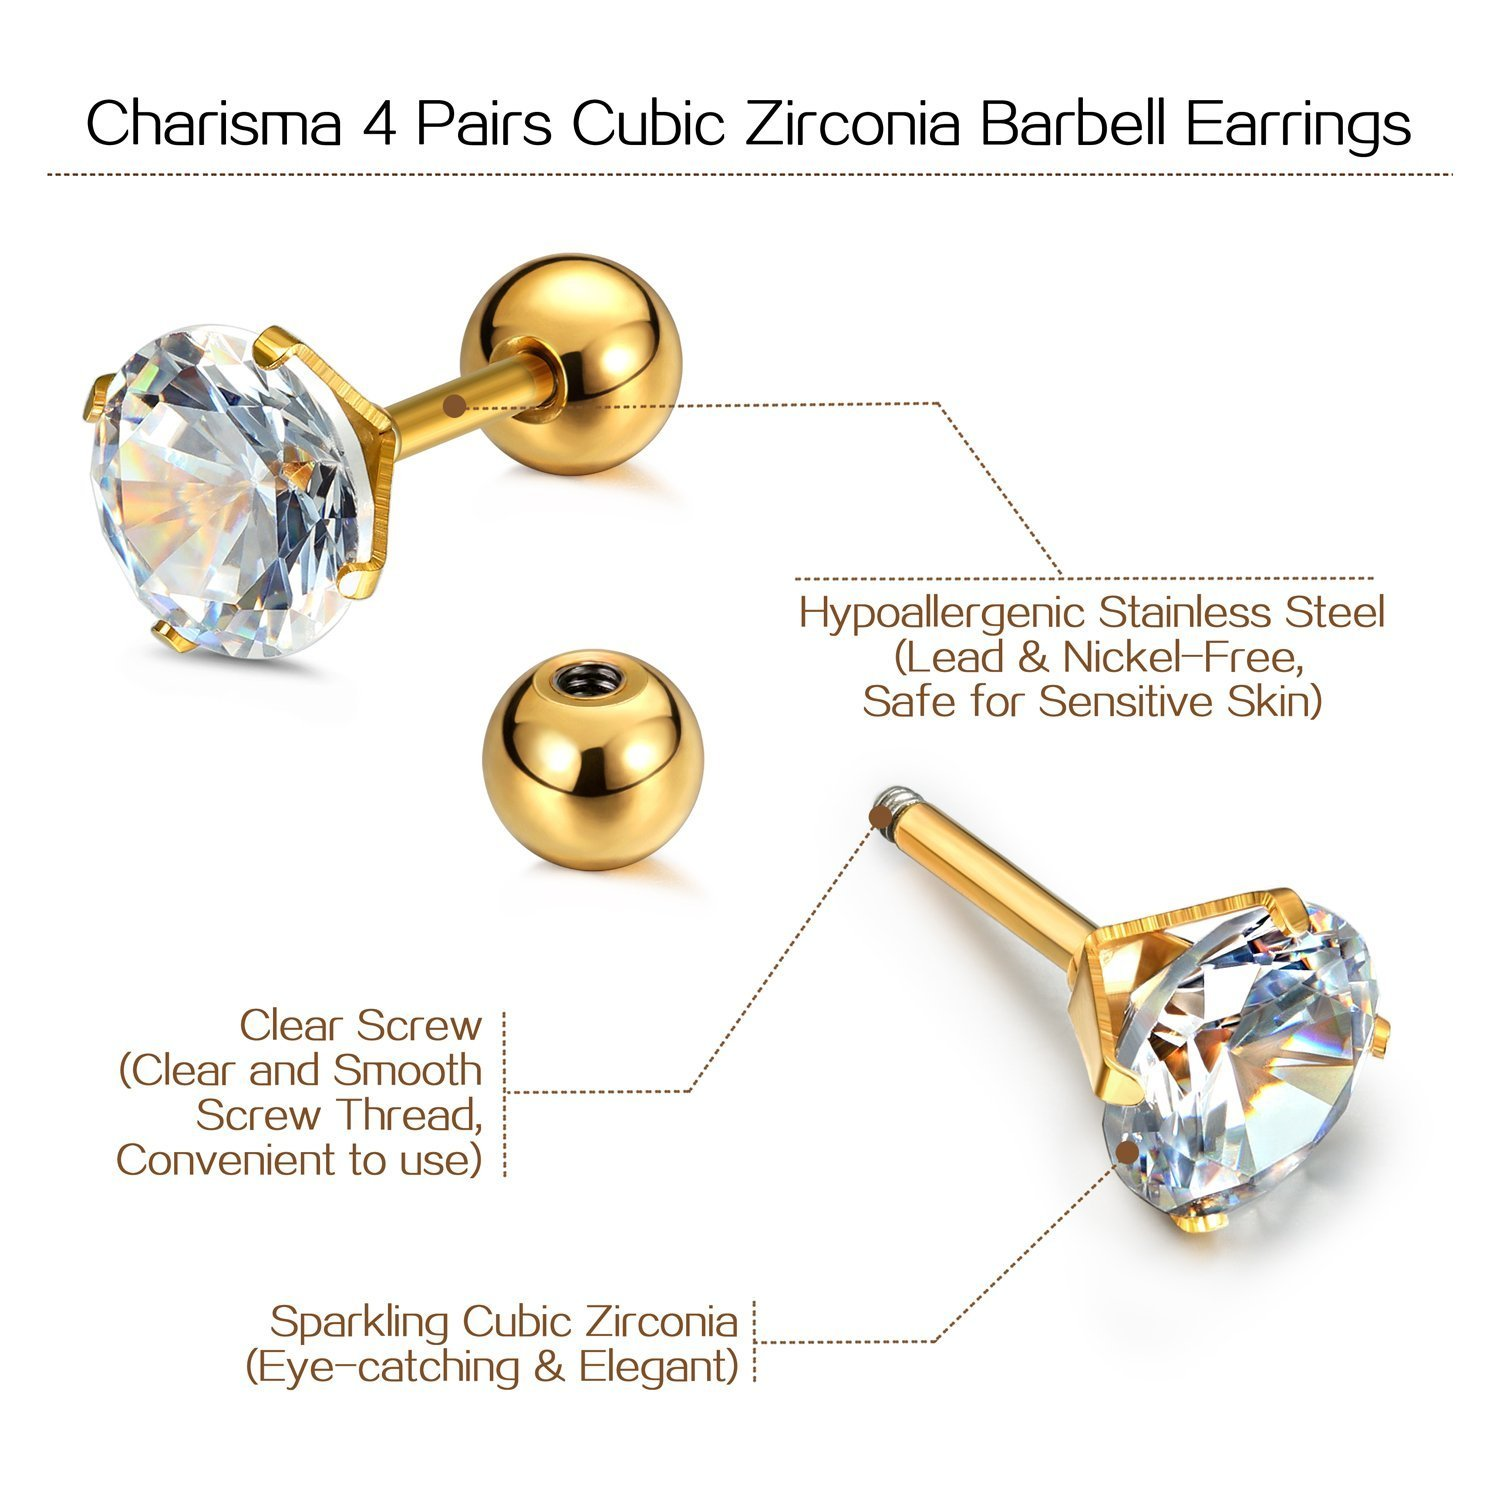 3 Pairs//4 Pairs, 6mm Bar Length, 3mm-6mm Cubic Zirconia Charisma 16G Cartilage Tragus Helix Stud Stainless Steel Barbell Earrings for Women Men Toodlers Screw Back Piercing Earrings